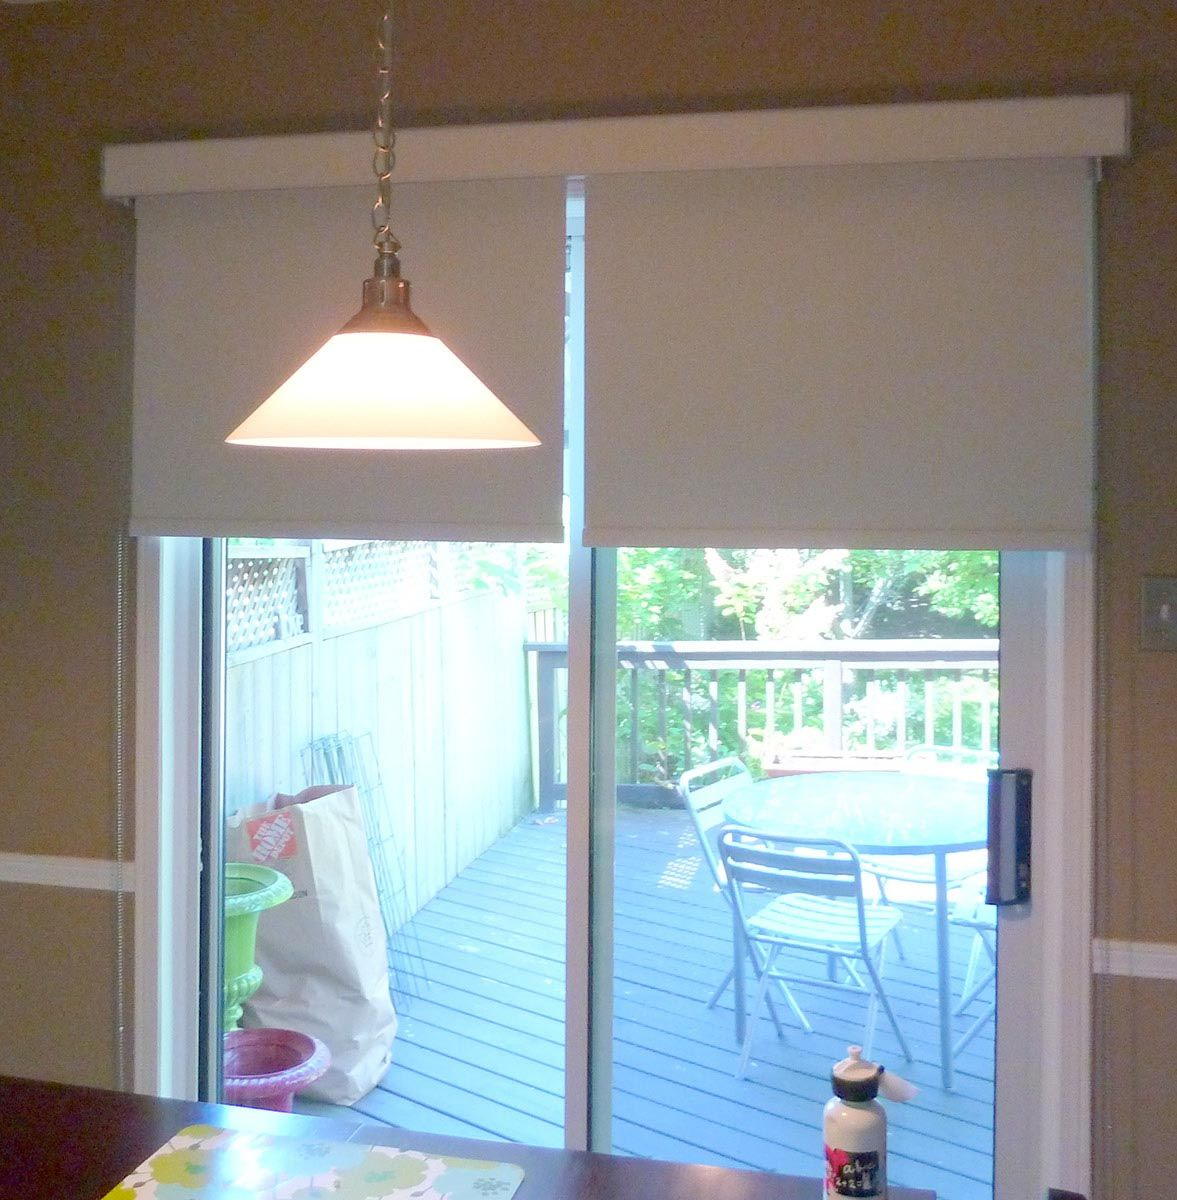 Roller Shades for Patio Doors | Window Shades in 2019 ...